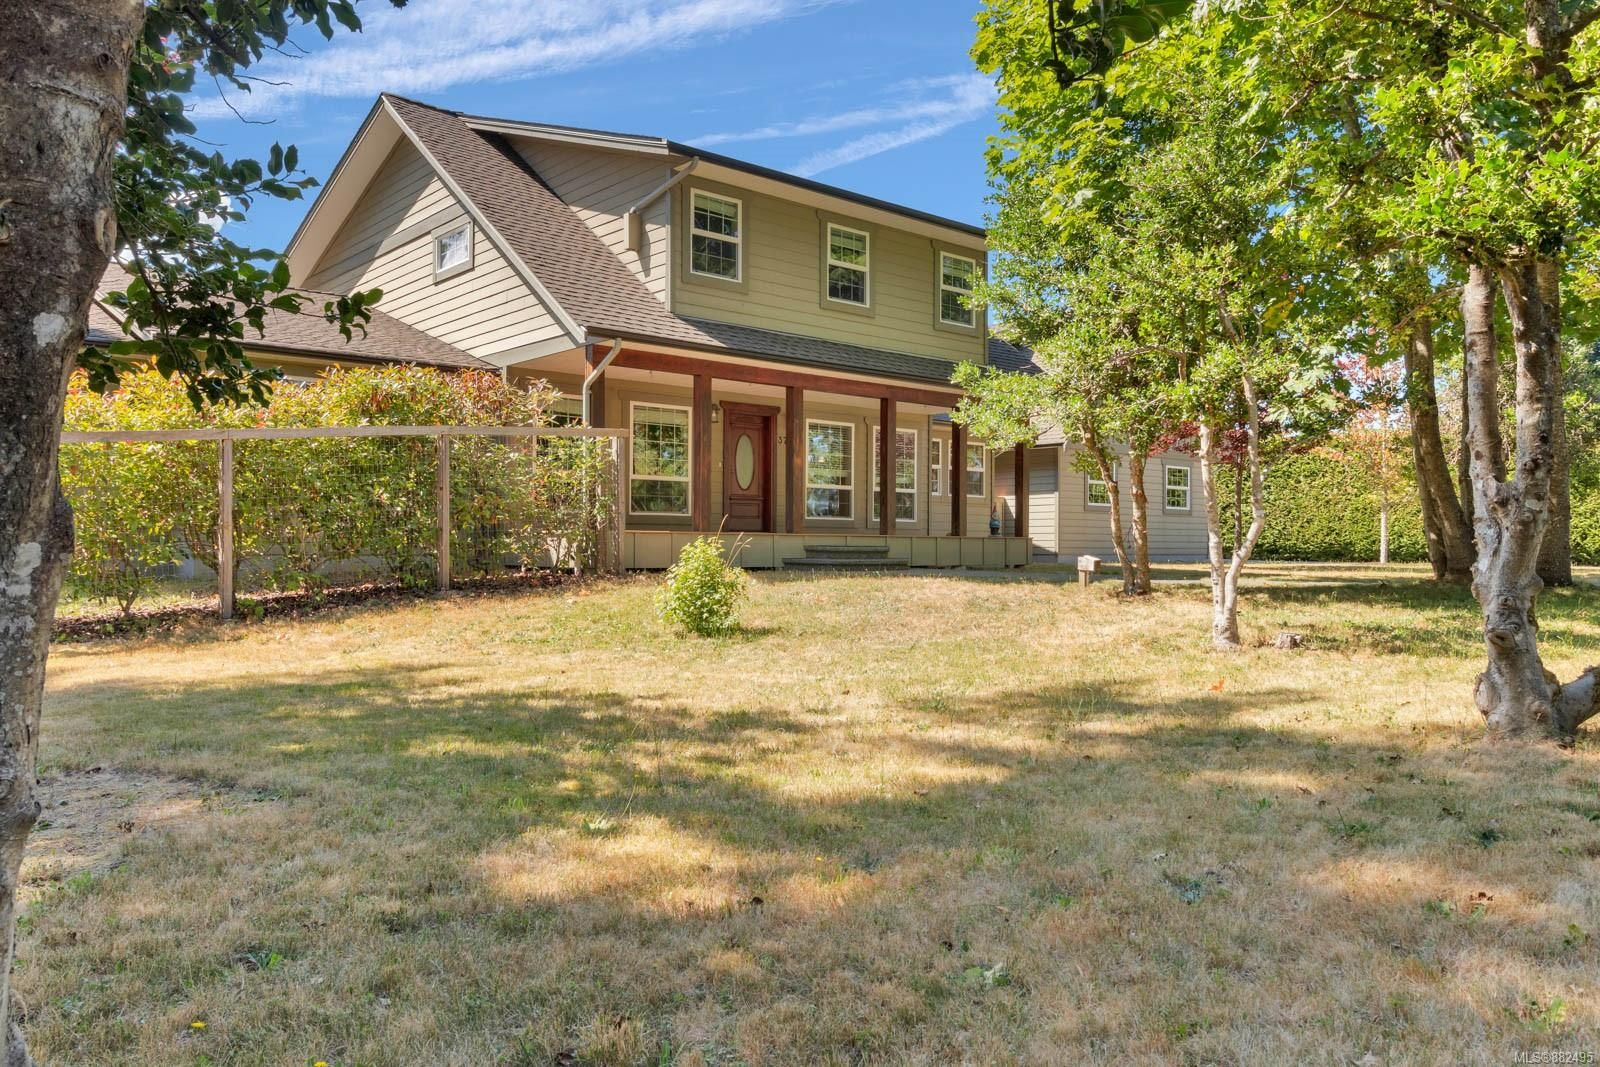 Photo 28: Photos: 375 Butchers Rd in : CV Comox (Town of) House for sale (Comox Valley)  : MLS®# 882495